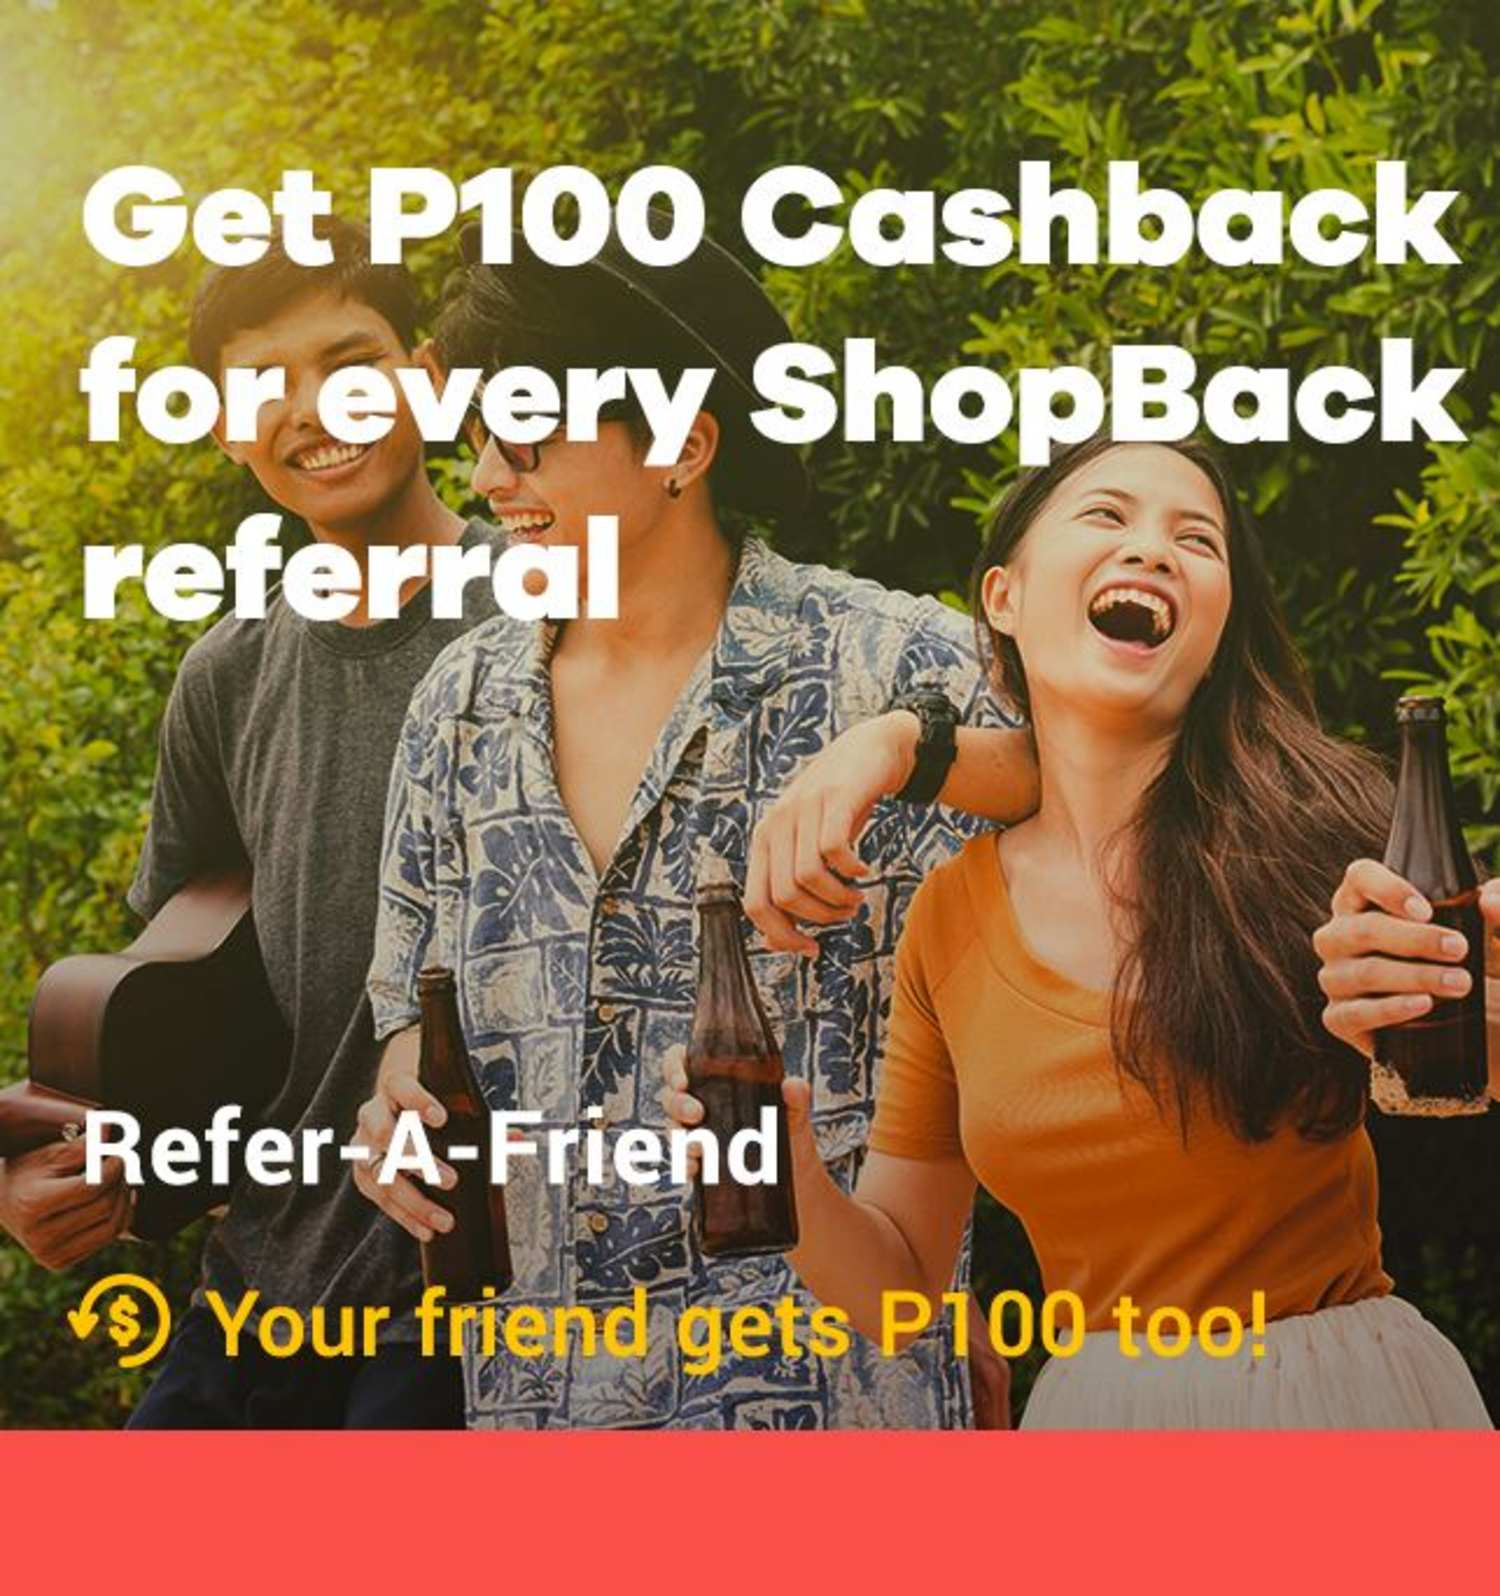 Refer a friend on ShopBack, Get P100 Cashback bonus